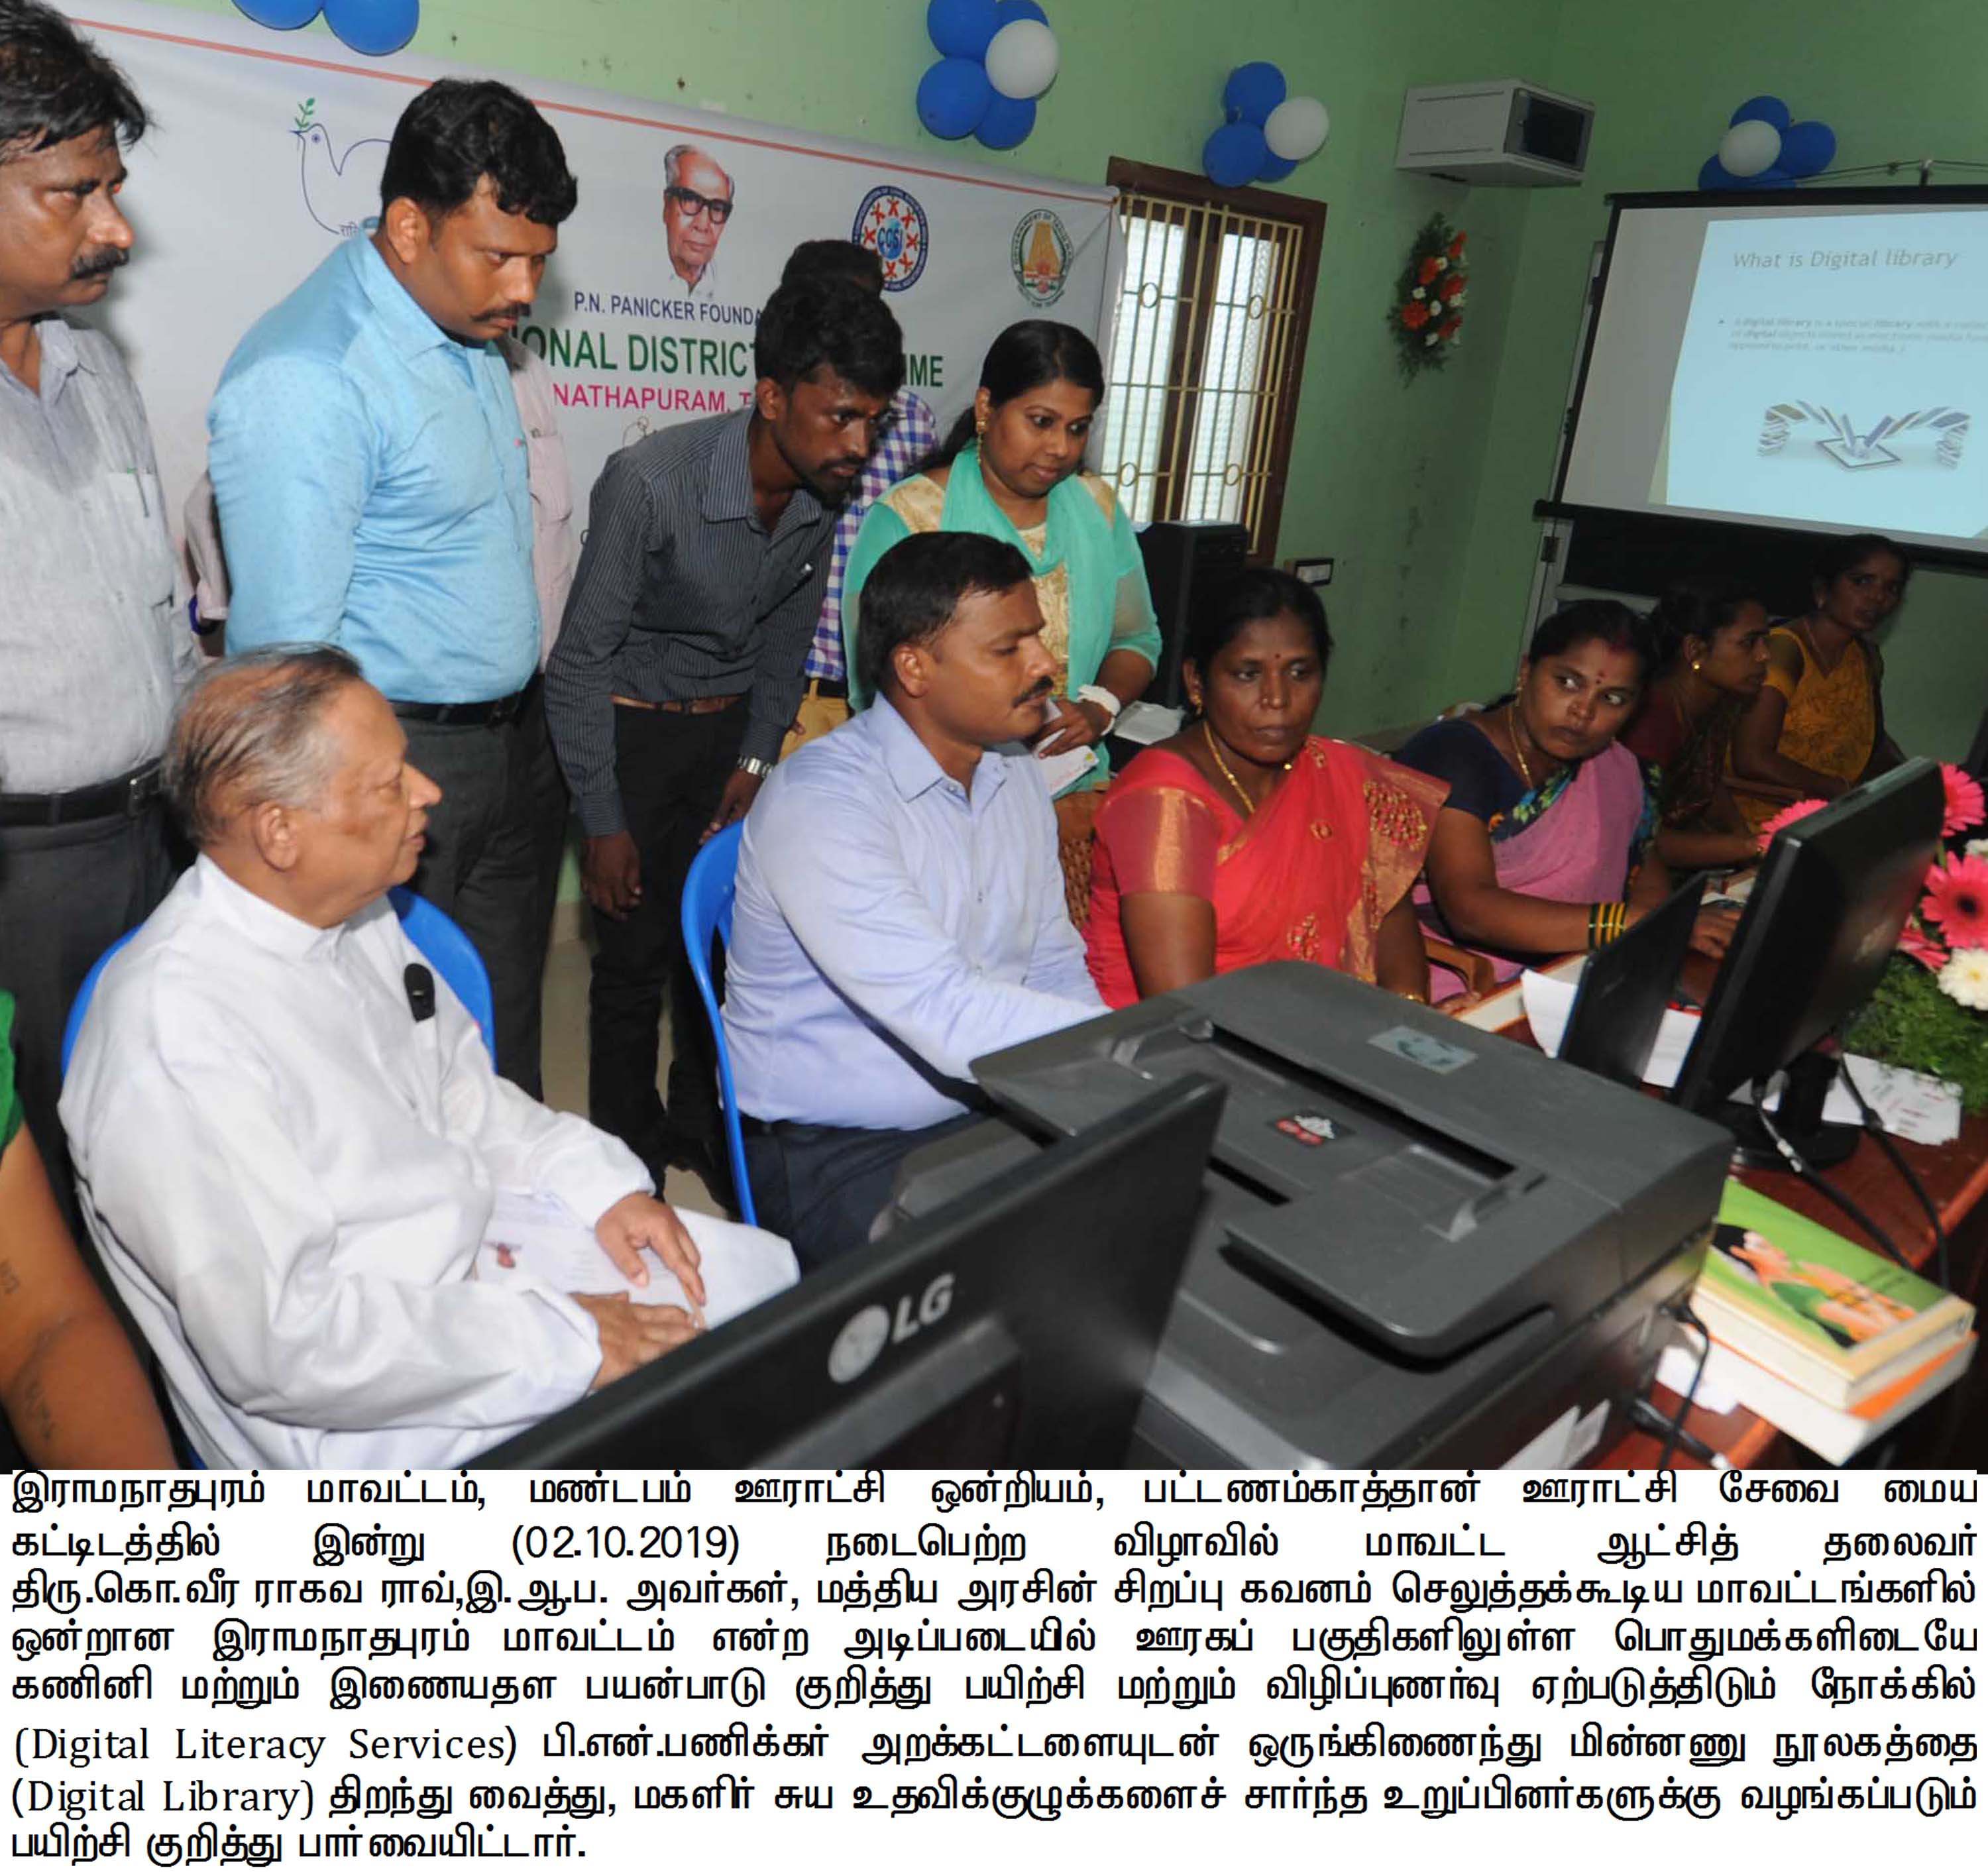 ASPIRATIONAL DISTRICT_DIGITAL LITERACY SERVICES_INAUGURATION OF DIGITAL LIBRARY_NEWS_02/10/2019